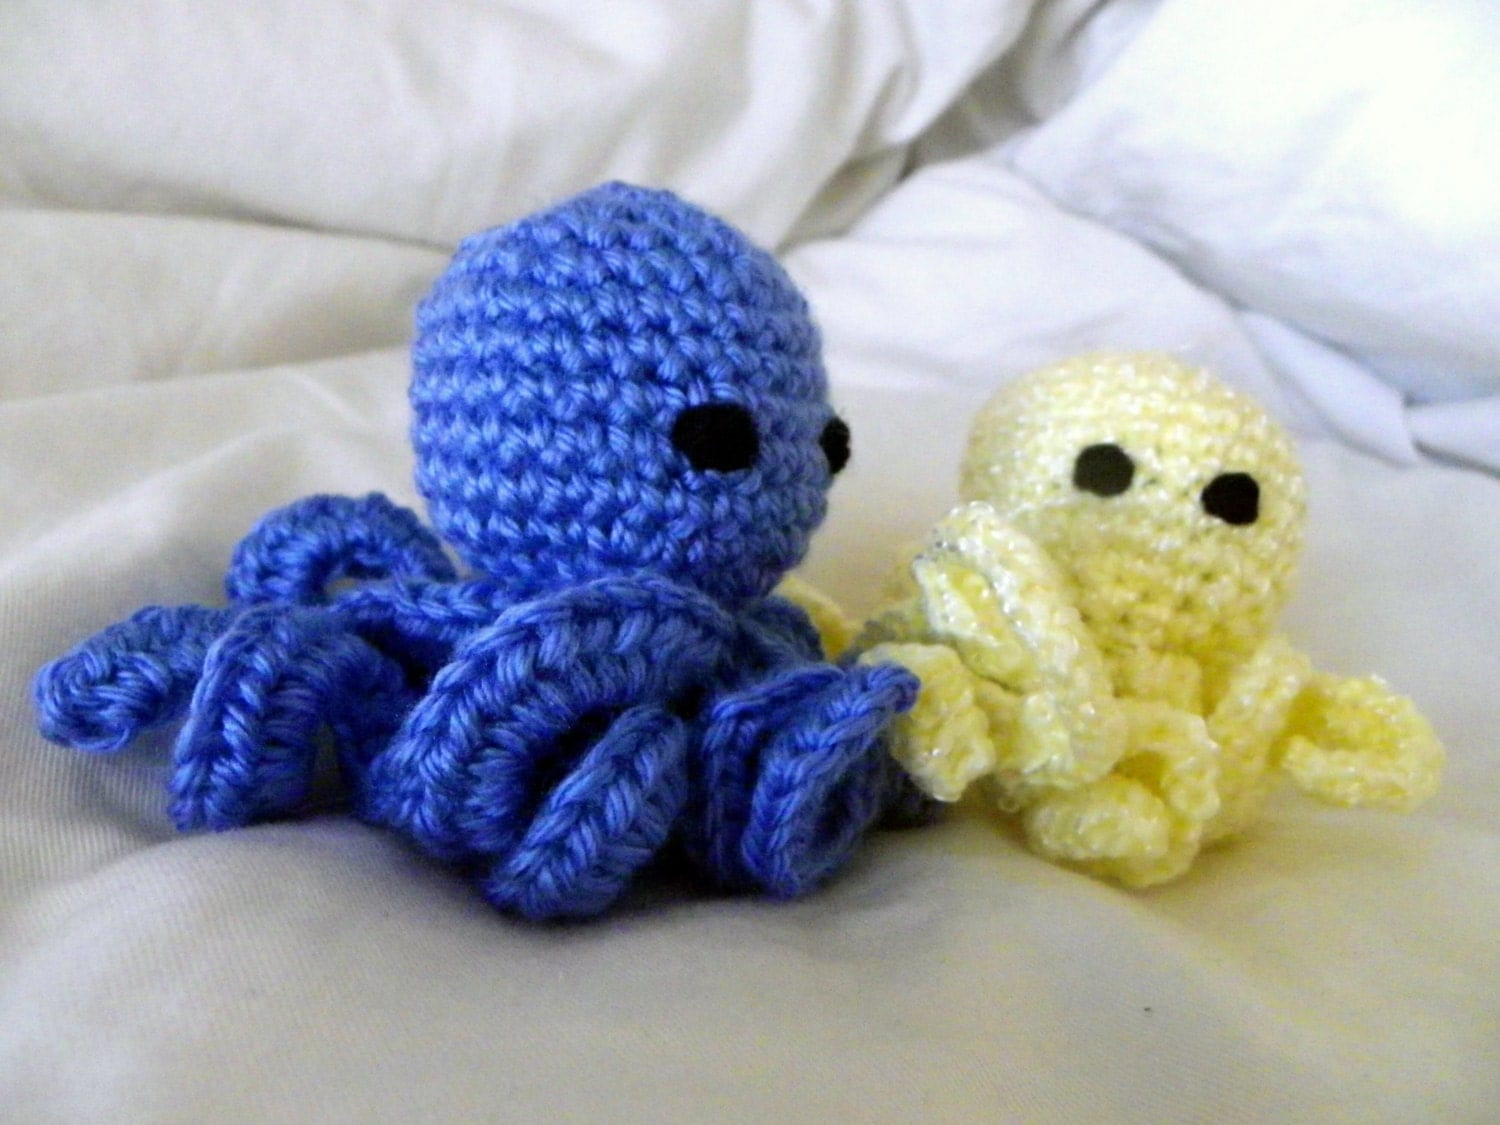 Crochet Amigurumi Patterns Free Beginner : Life of a College Blogger: Free Crochet Pattern- Amigurumi ...